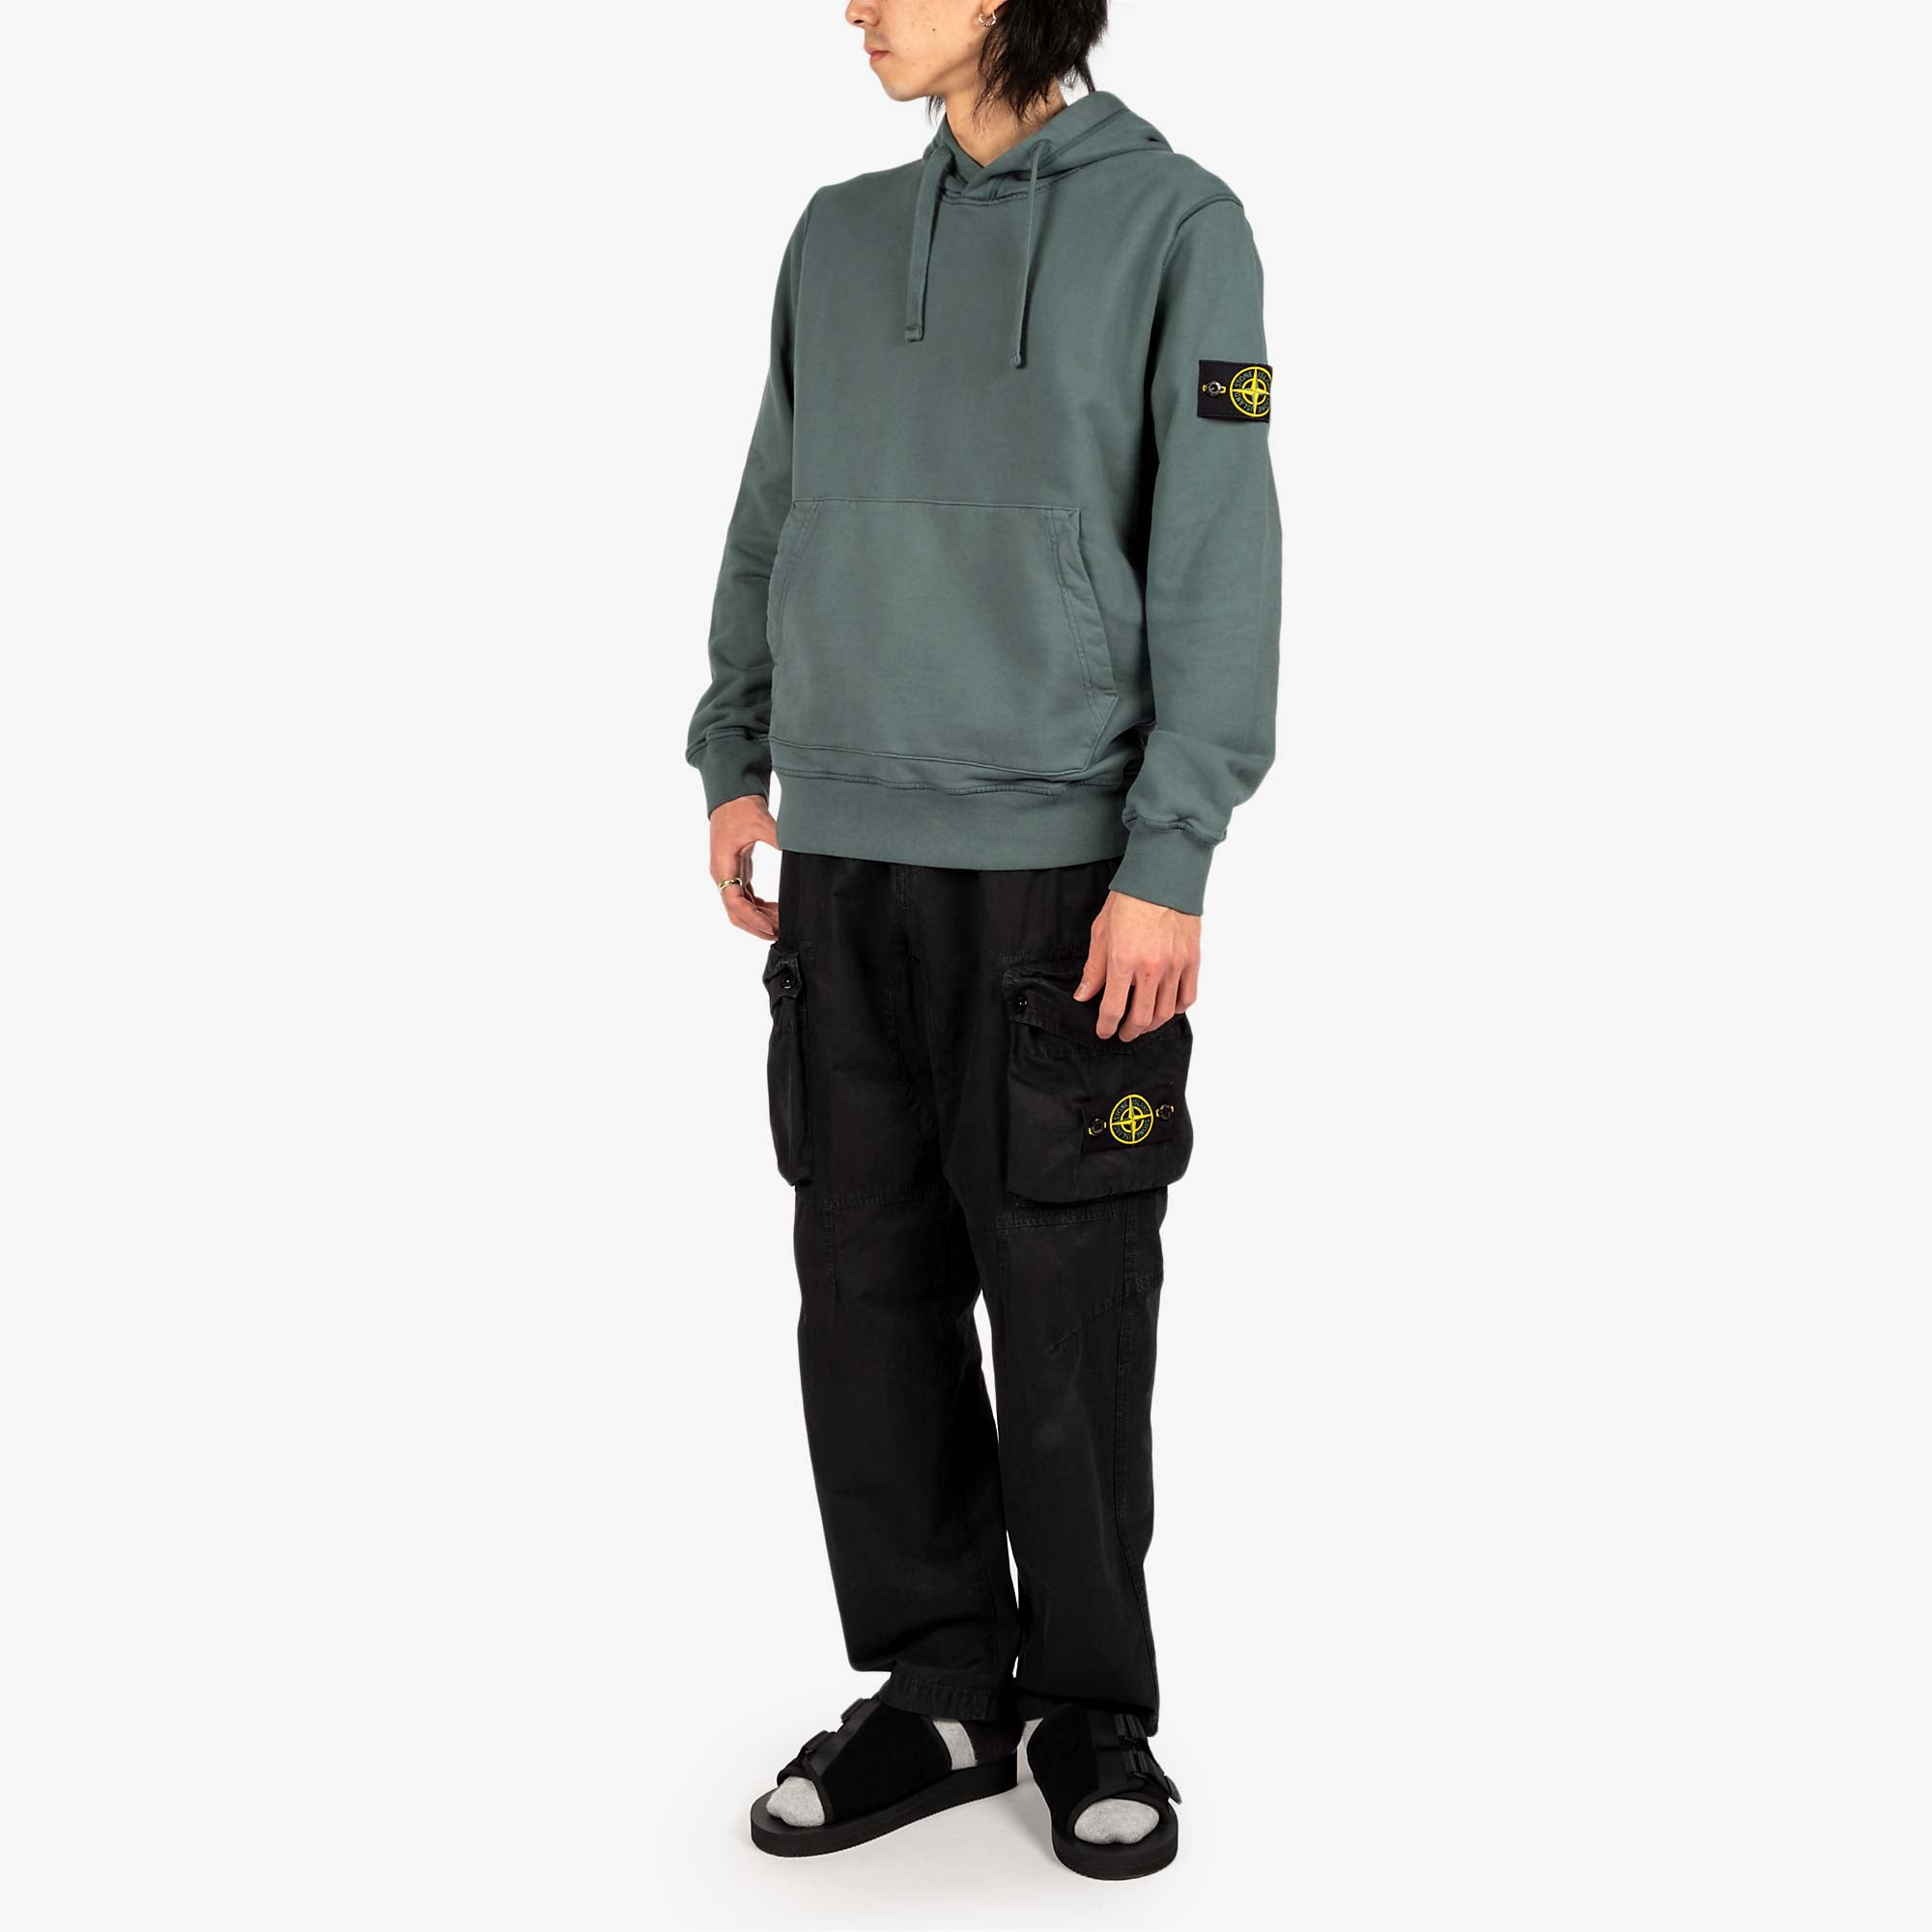 Stone Island T.CO Old Effect Cargo Pant 7415319WA - Black 7